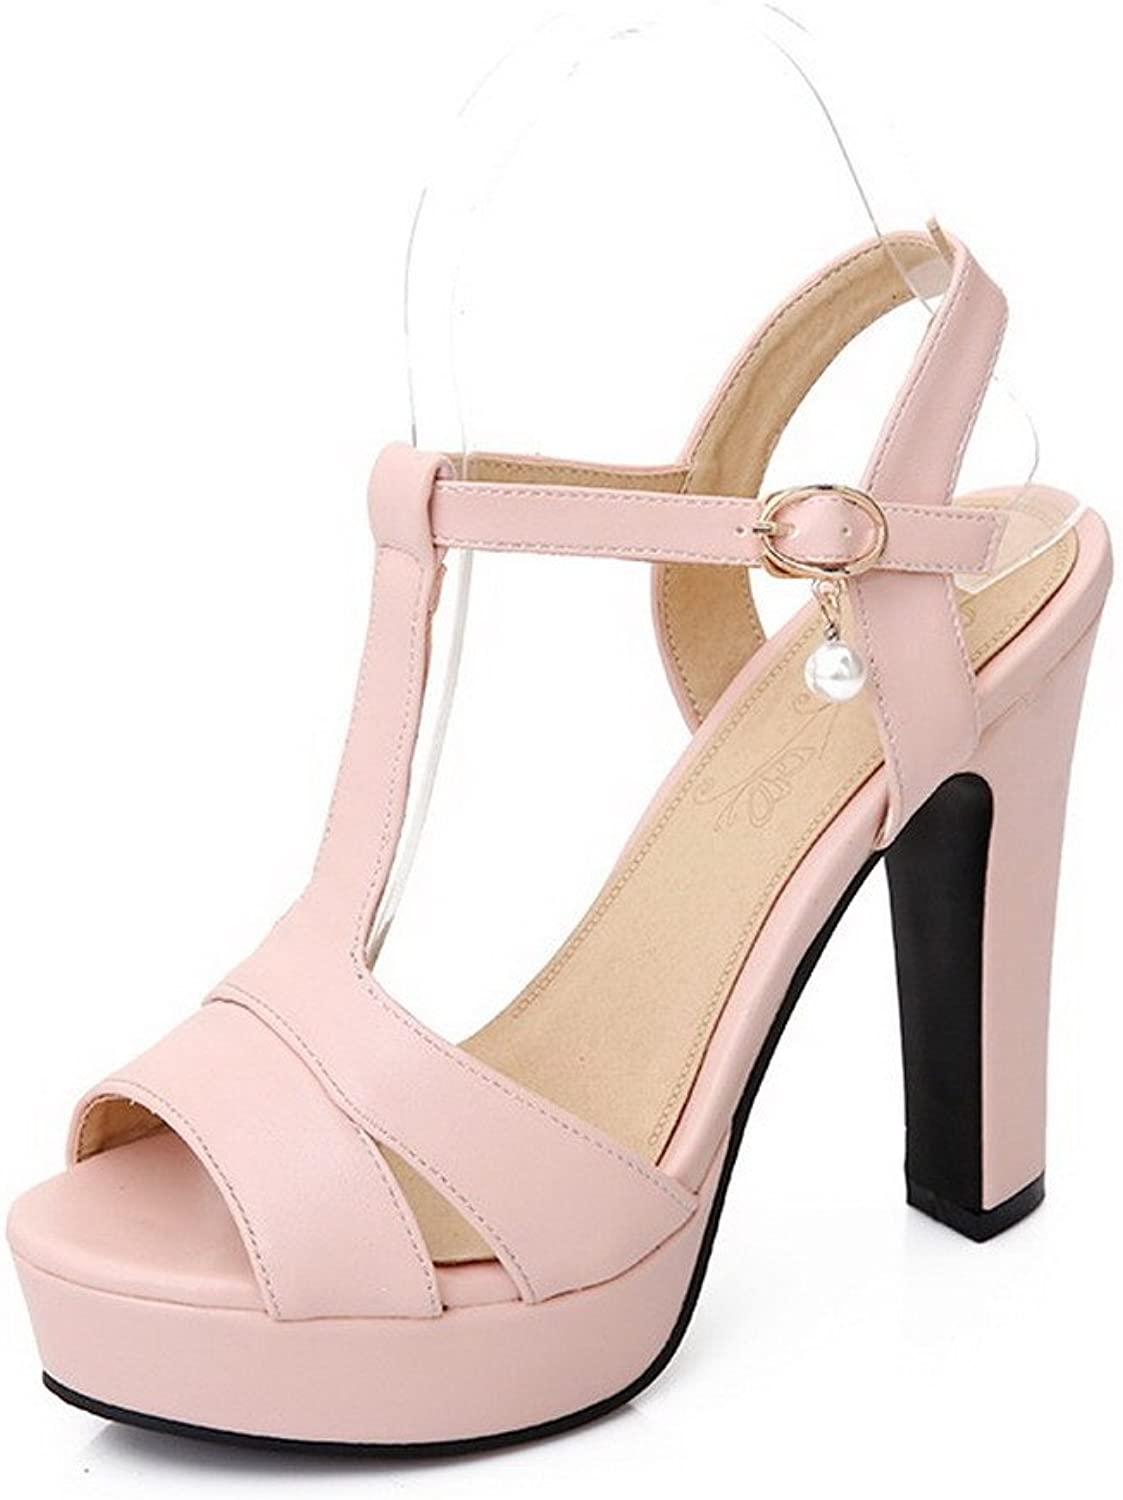 WeenFashion Women's Peep Toe High-Heels Soft Material Solid Buckle Heeled-Sandals